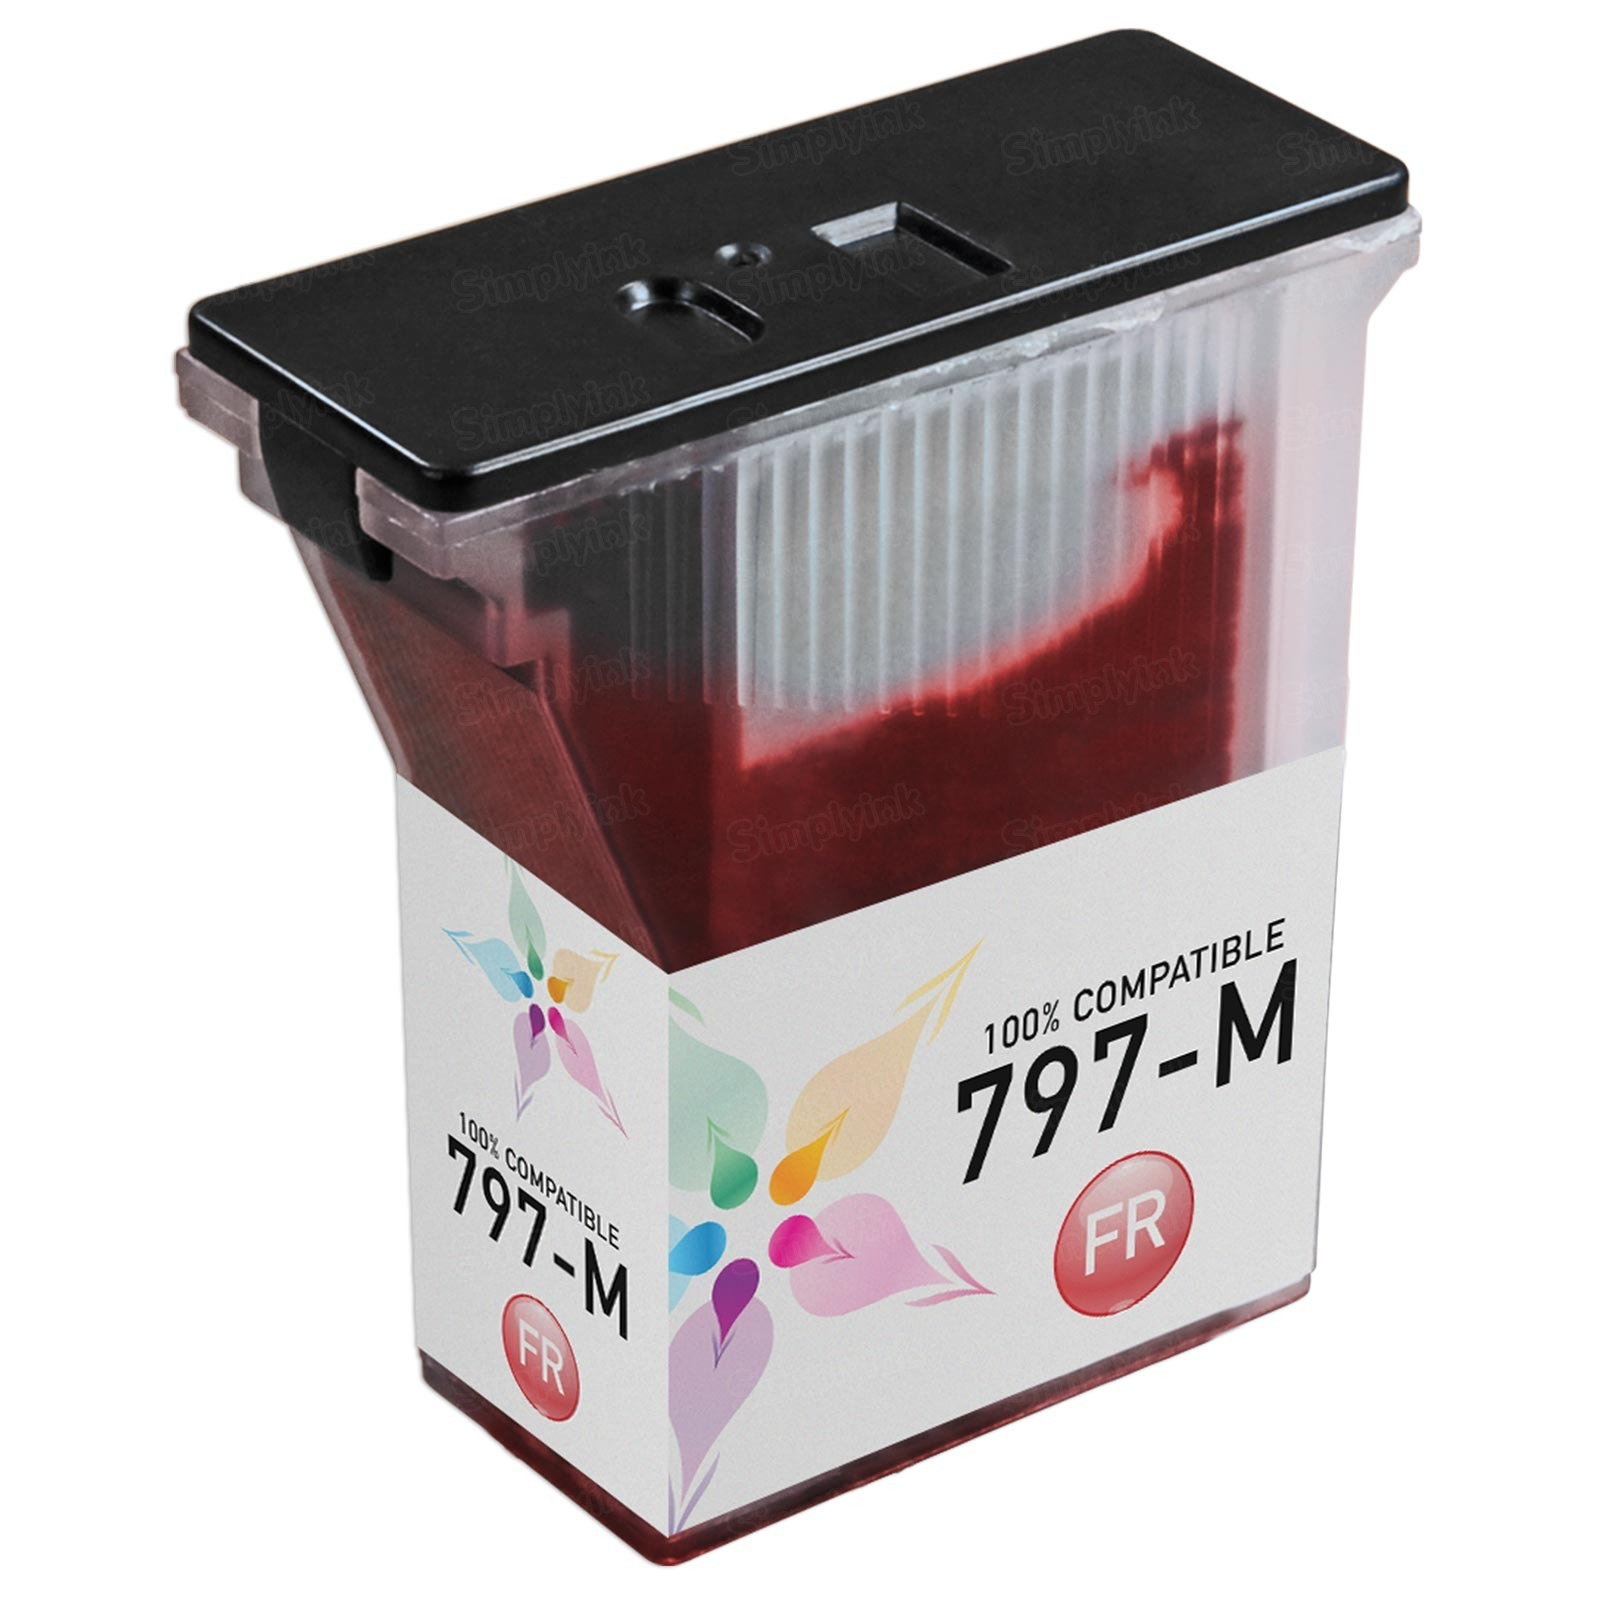 Compatible Replacement for Pitney Bowes 797-M Fluorescent Red Ink for the MailStation K7M0